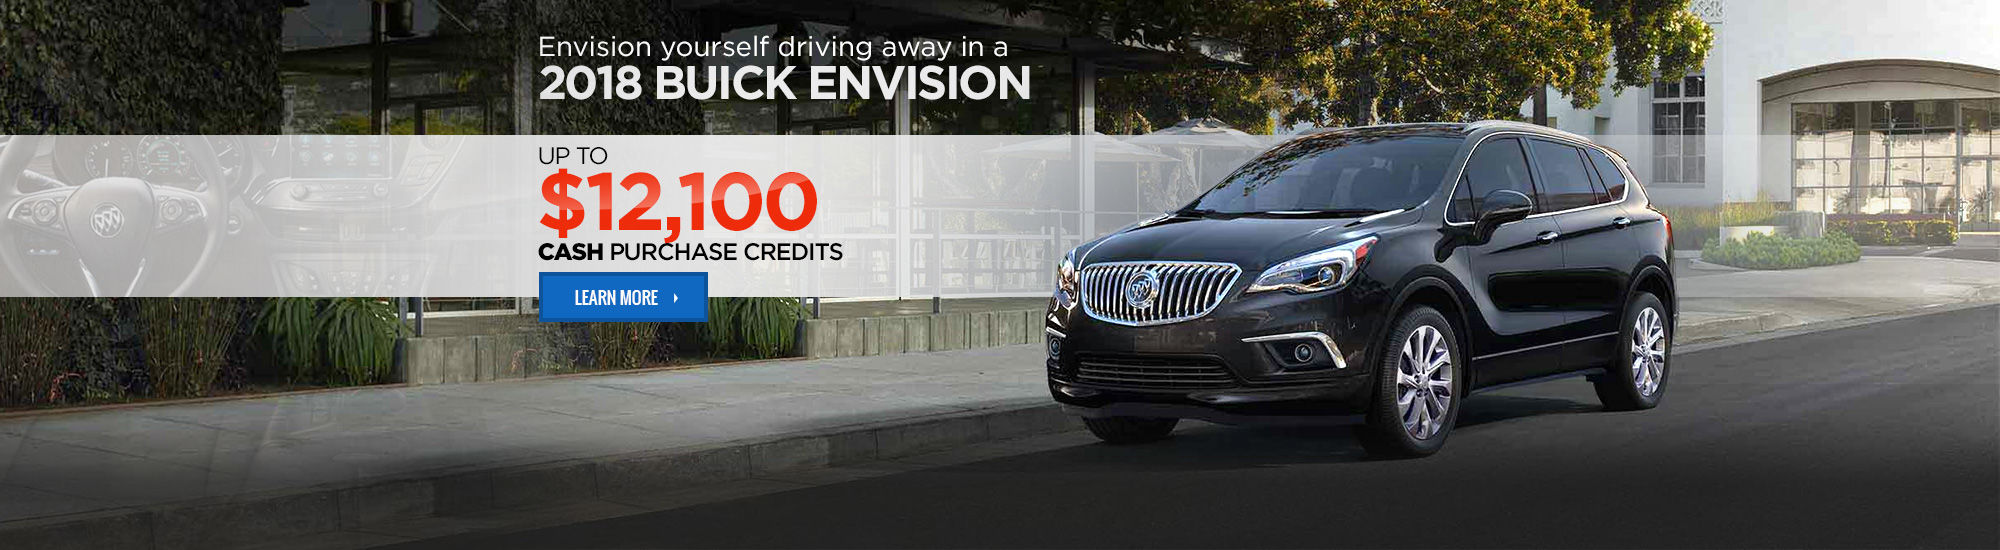 Buick Employee Pricing Discount - Envision